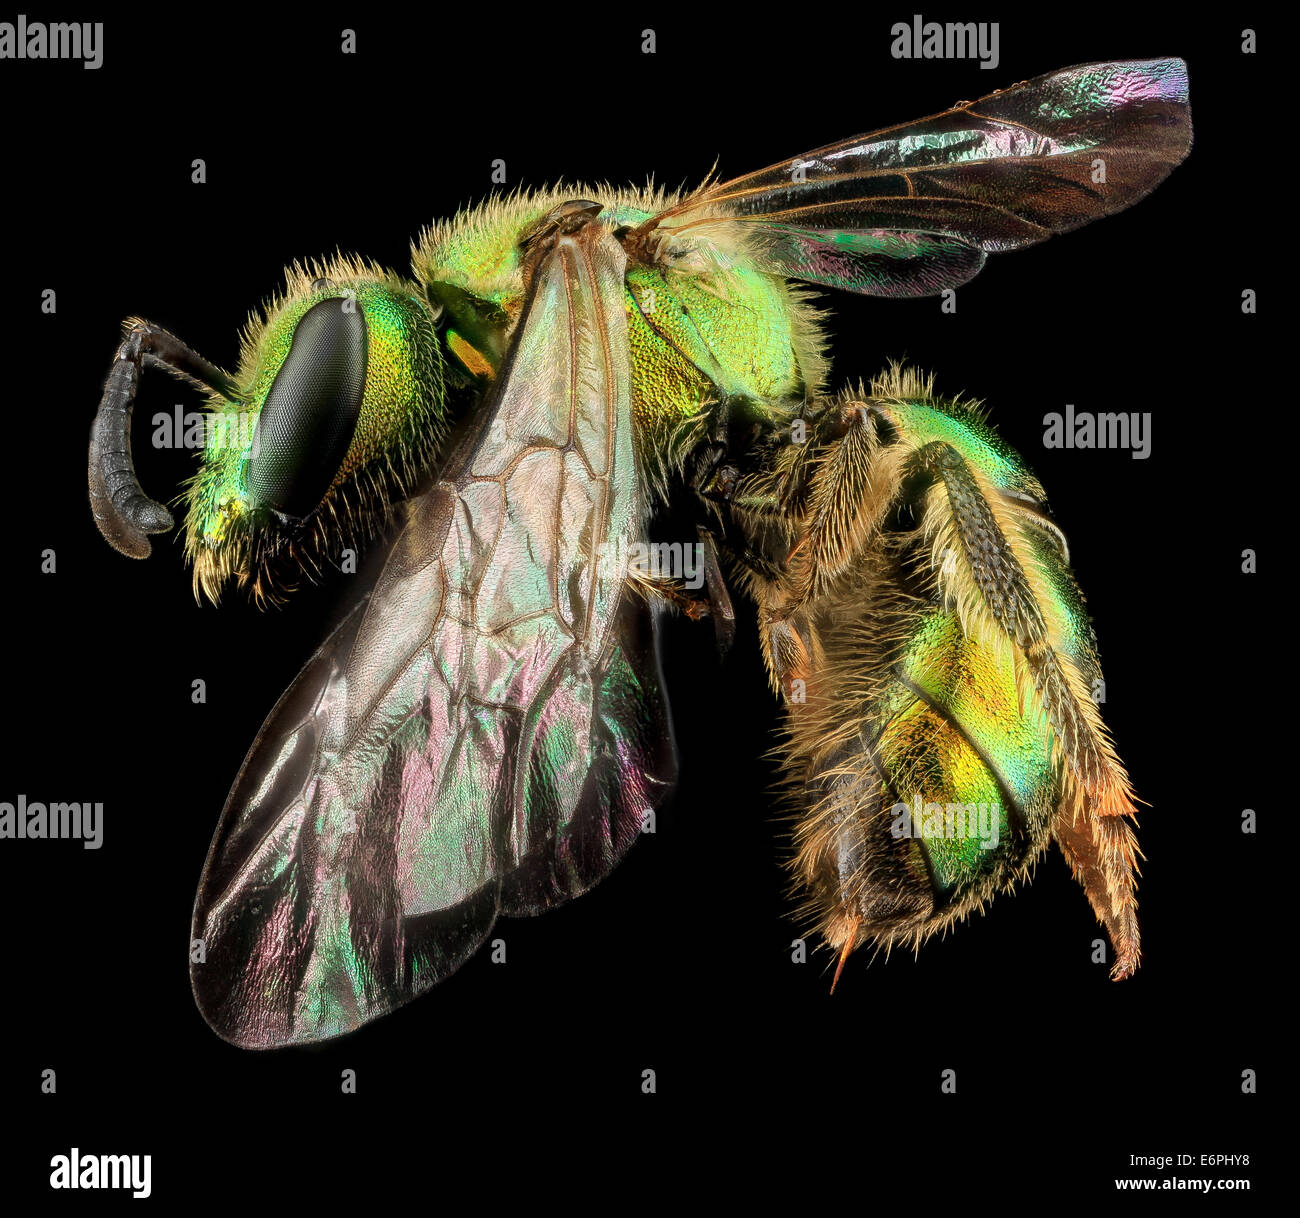 Augochlorella aurata, F, Side, MD, Boonsboro_2013-07-01-151241 ZS PMax_9198281922_o One of the most common bees - Stock Image